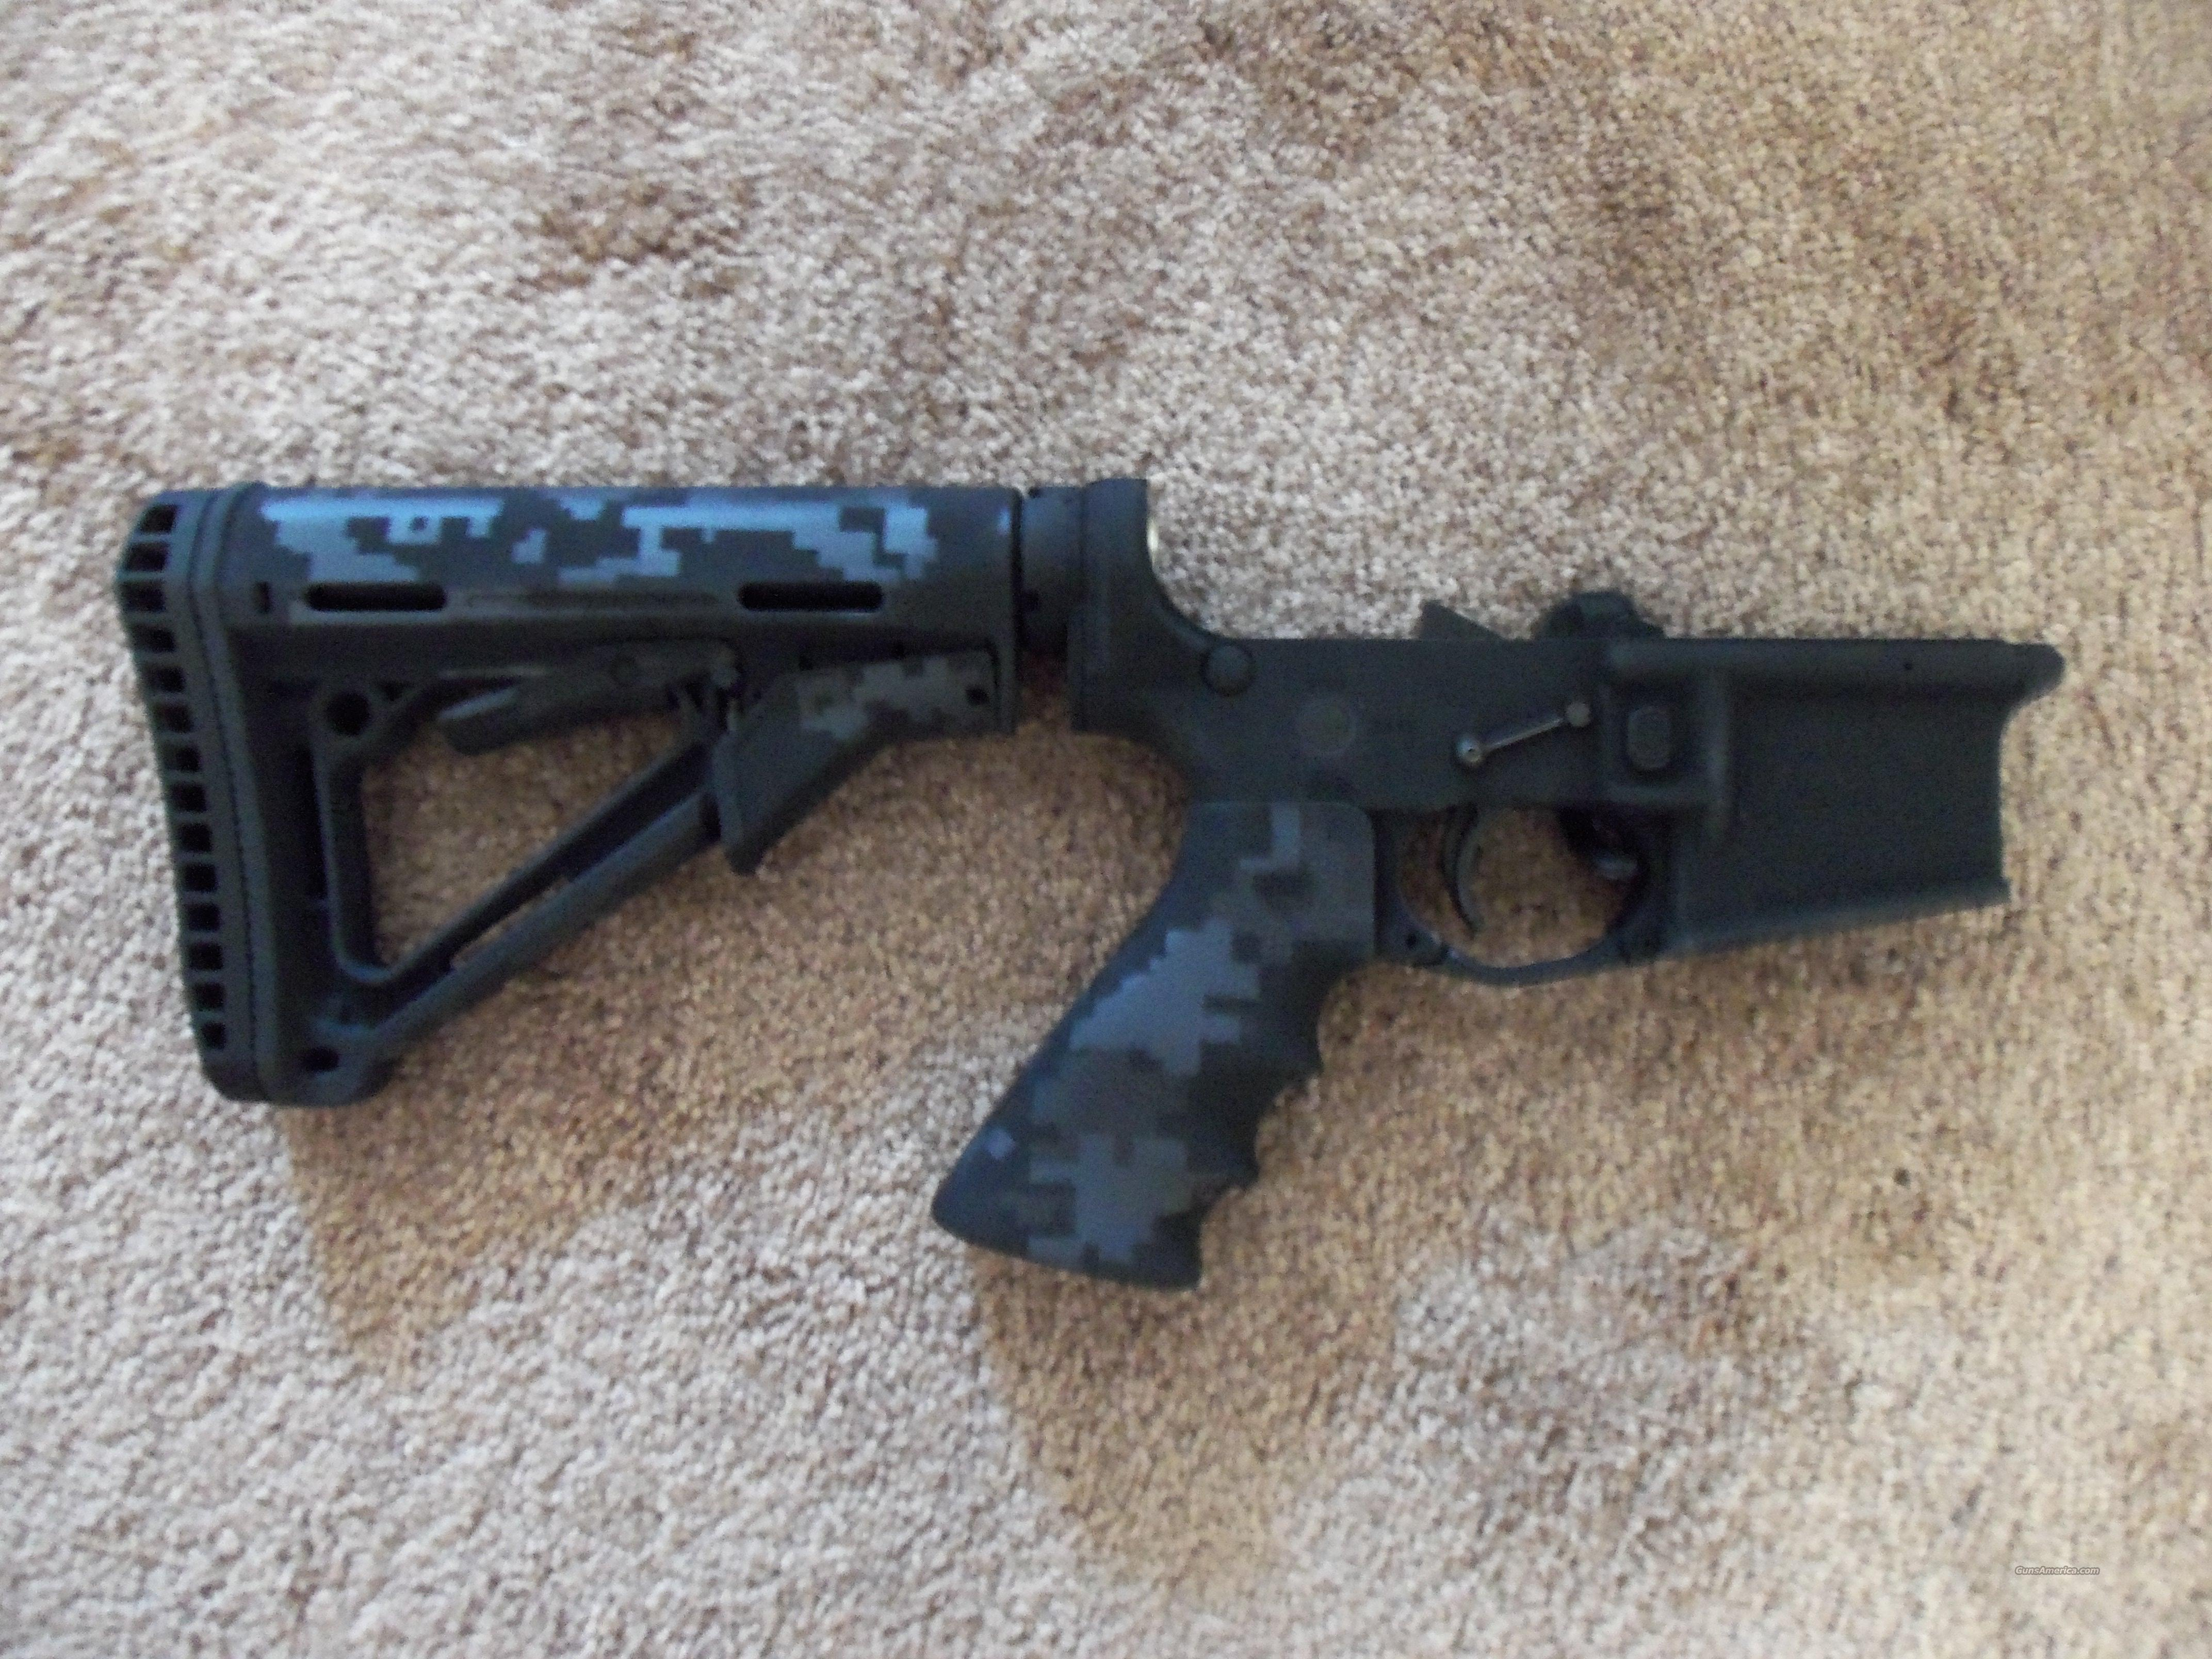 DPMS complete lower with extras and Duracoat  Guns > Rifles > AR-15 Rifles - Small Manufacturers > Lower Only